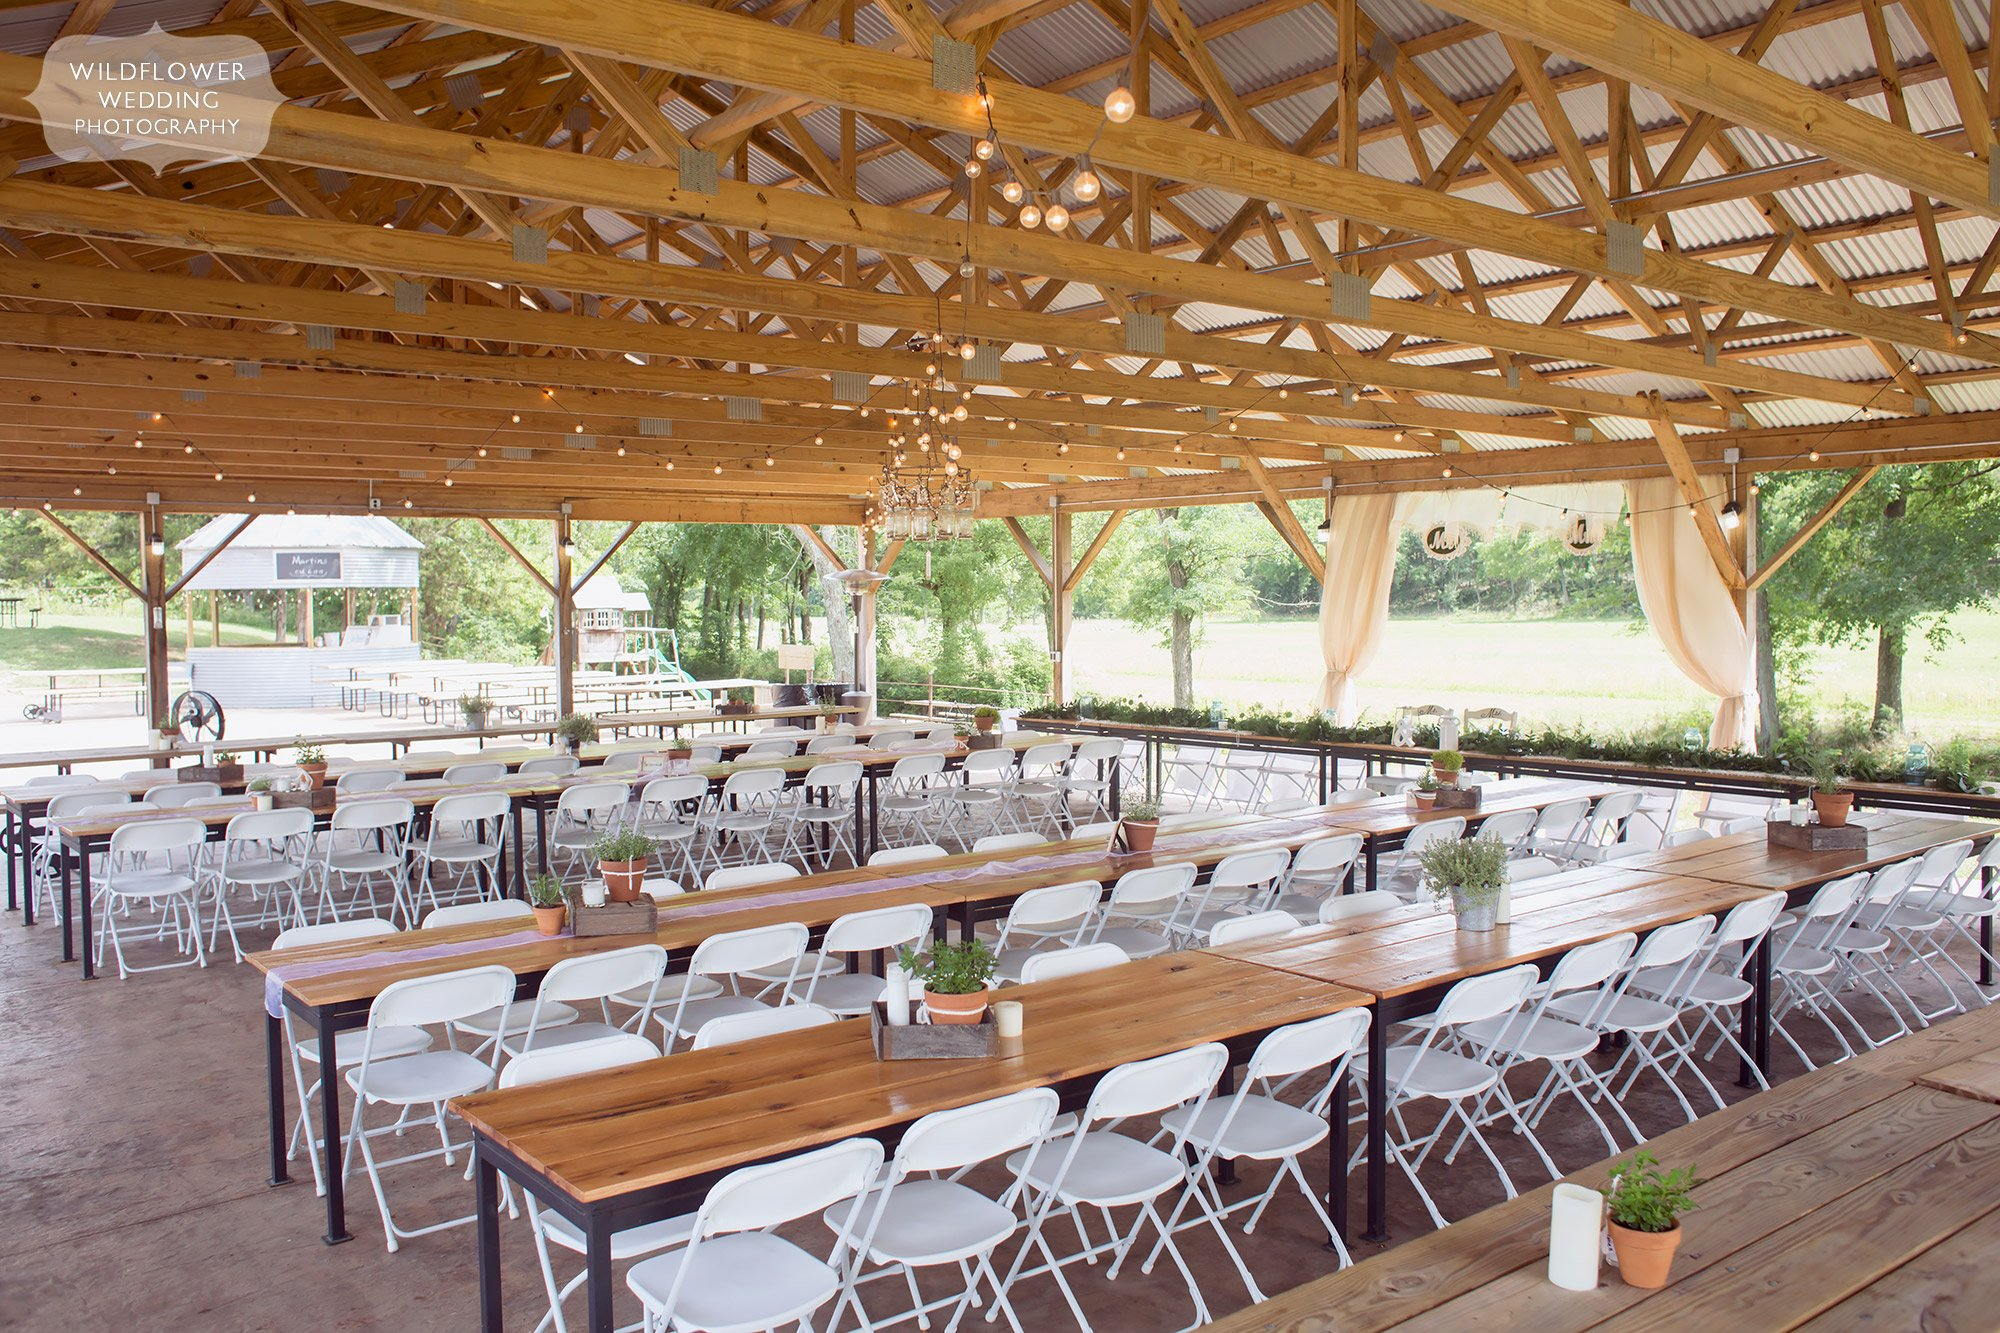 View of the dinner tables set up in the covered pavilion at this barn wedding venue at Kempker's Back 40 in southern MO.